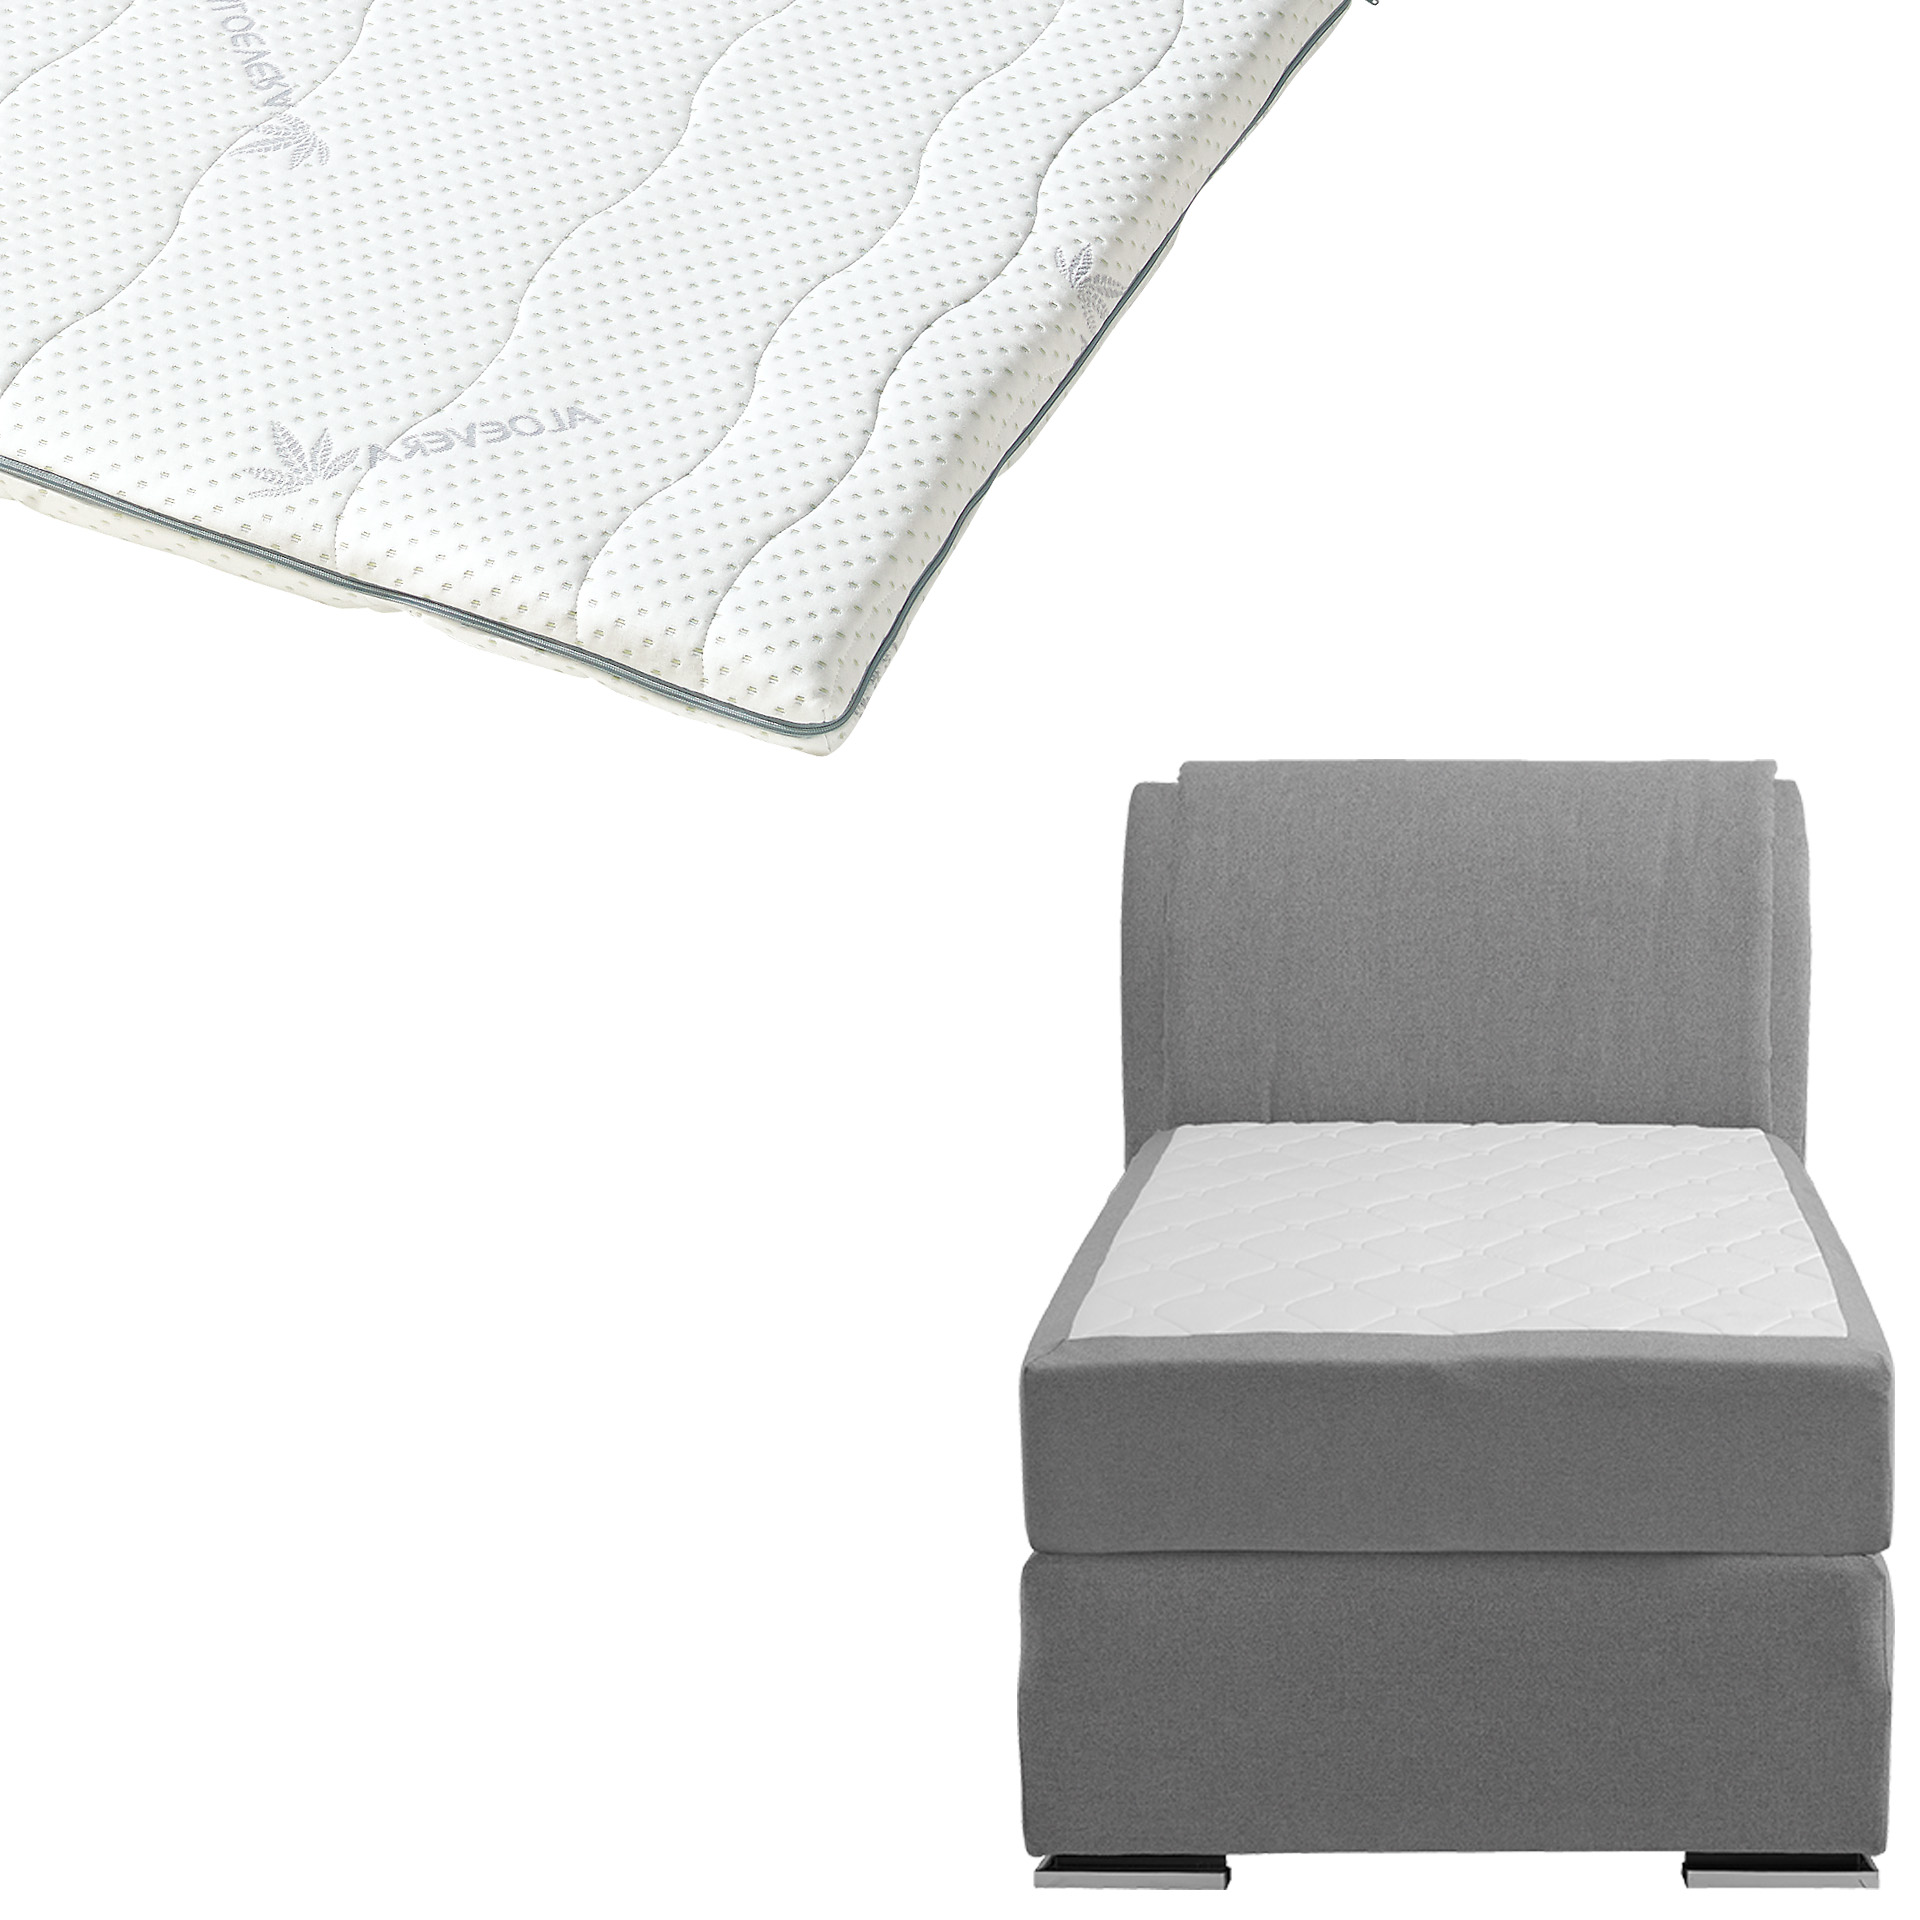 Boxspringbett-Set SUPERDREAM Himmerland/ErgoMAXX® Gel Touch®-Topper (90x200)